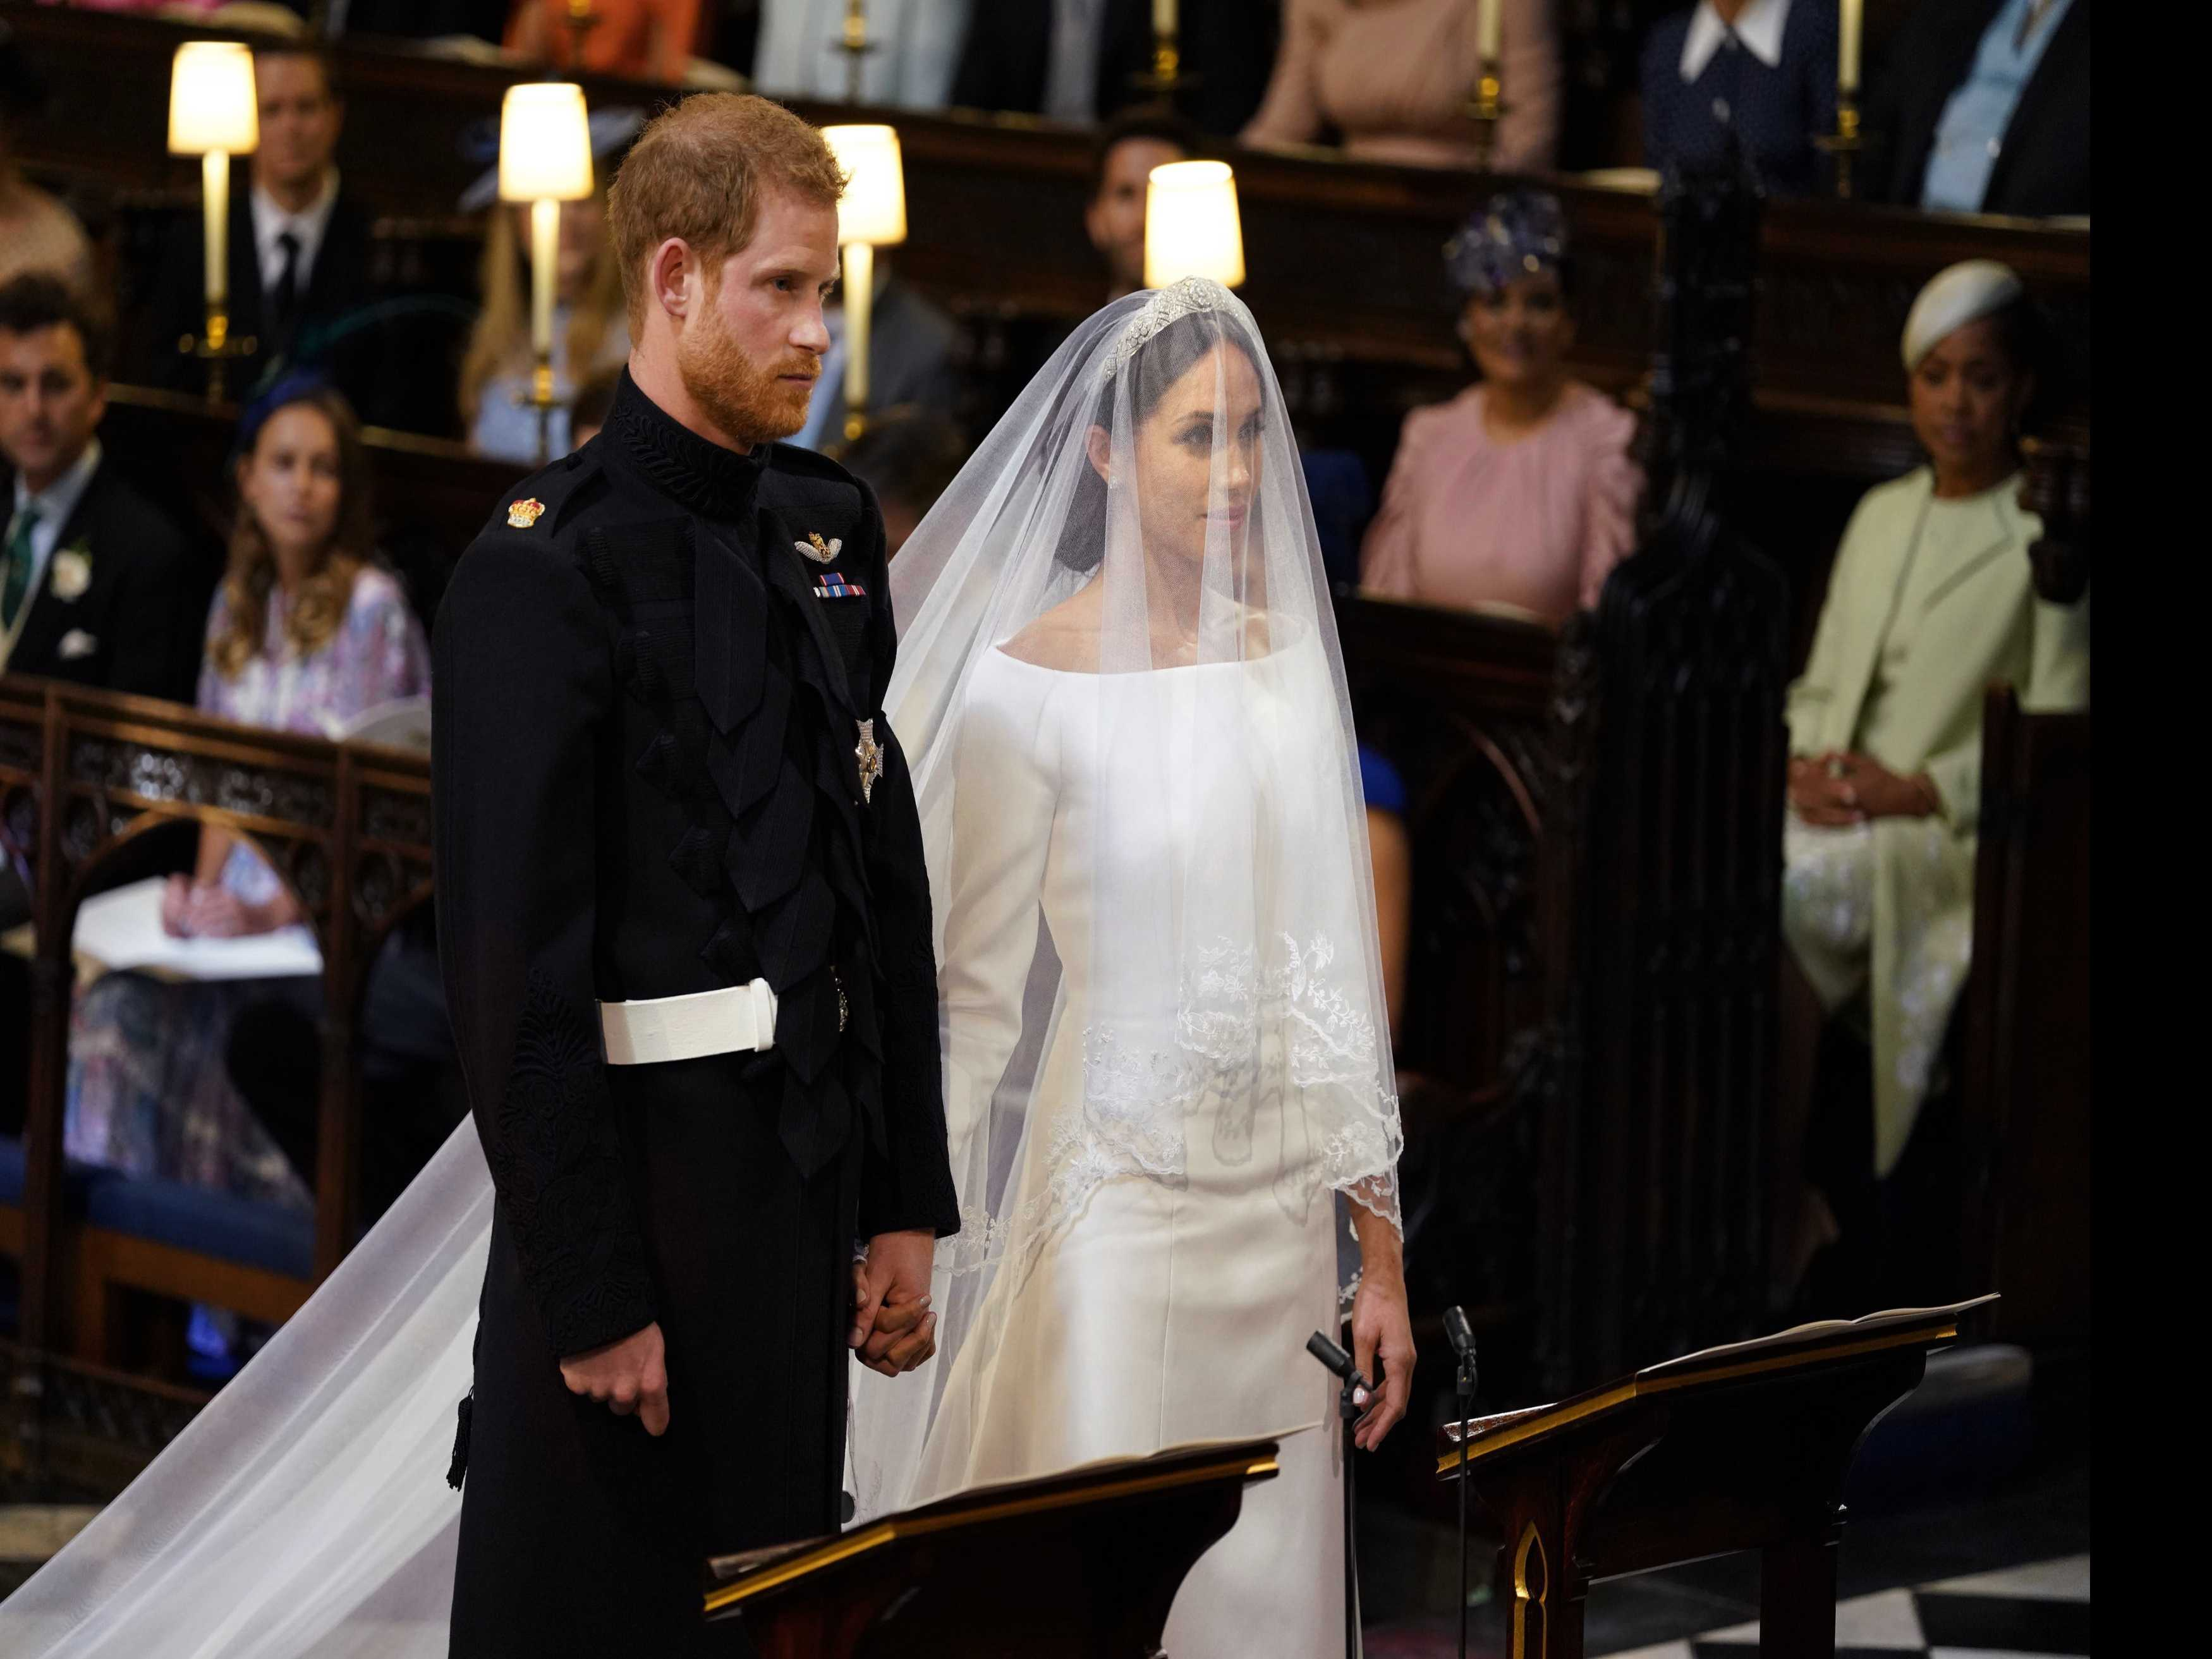 Prince Harry, Meghan Markle Smile with Joy at the Altar